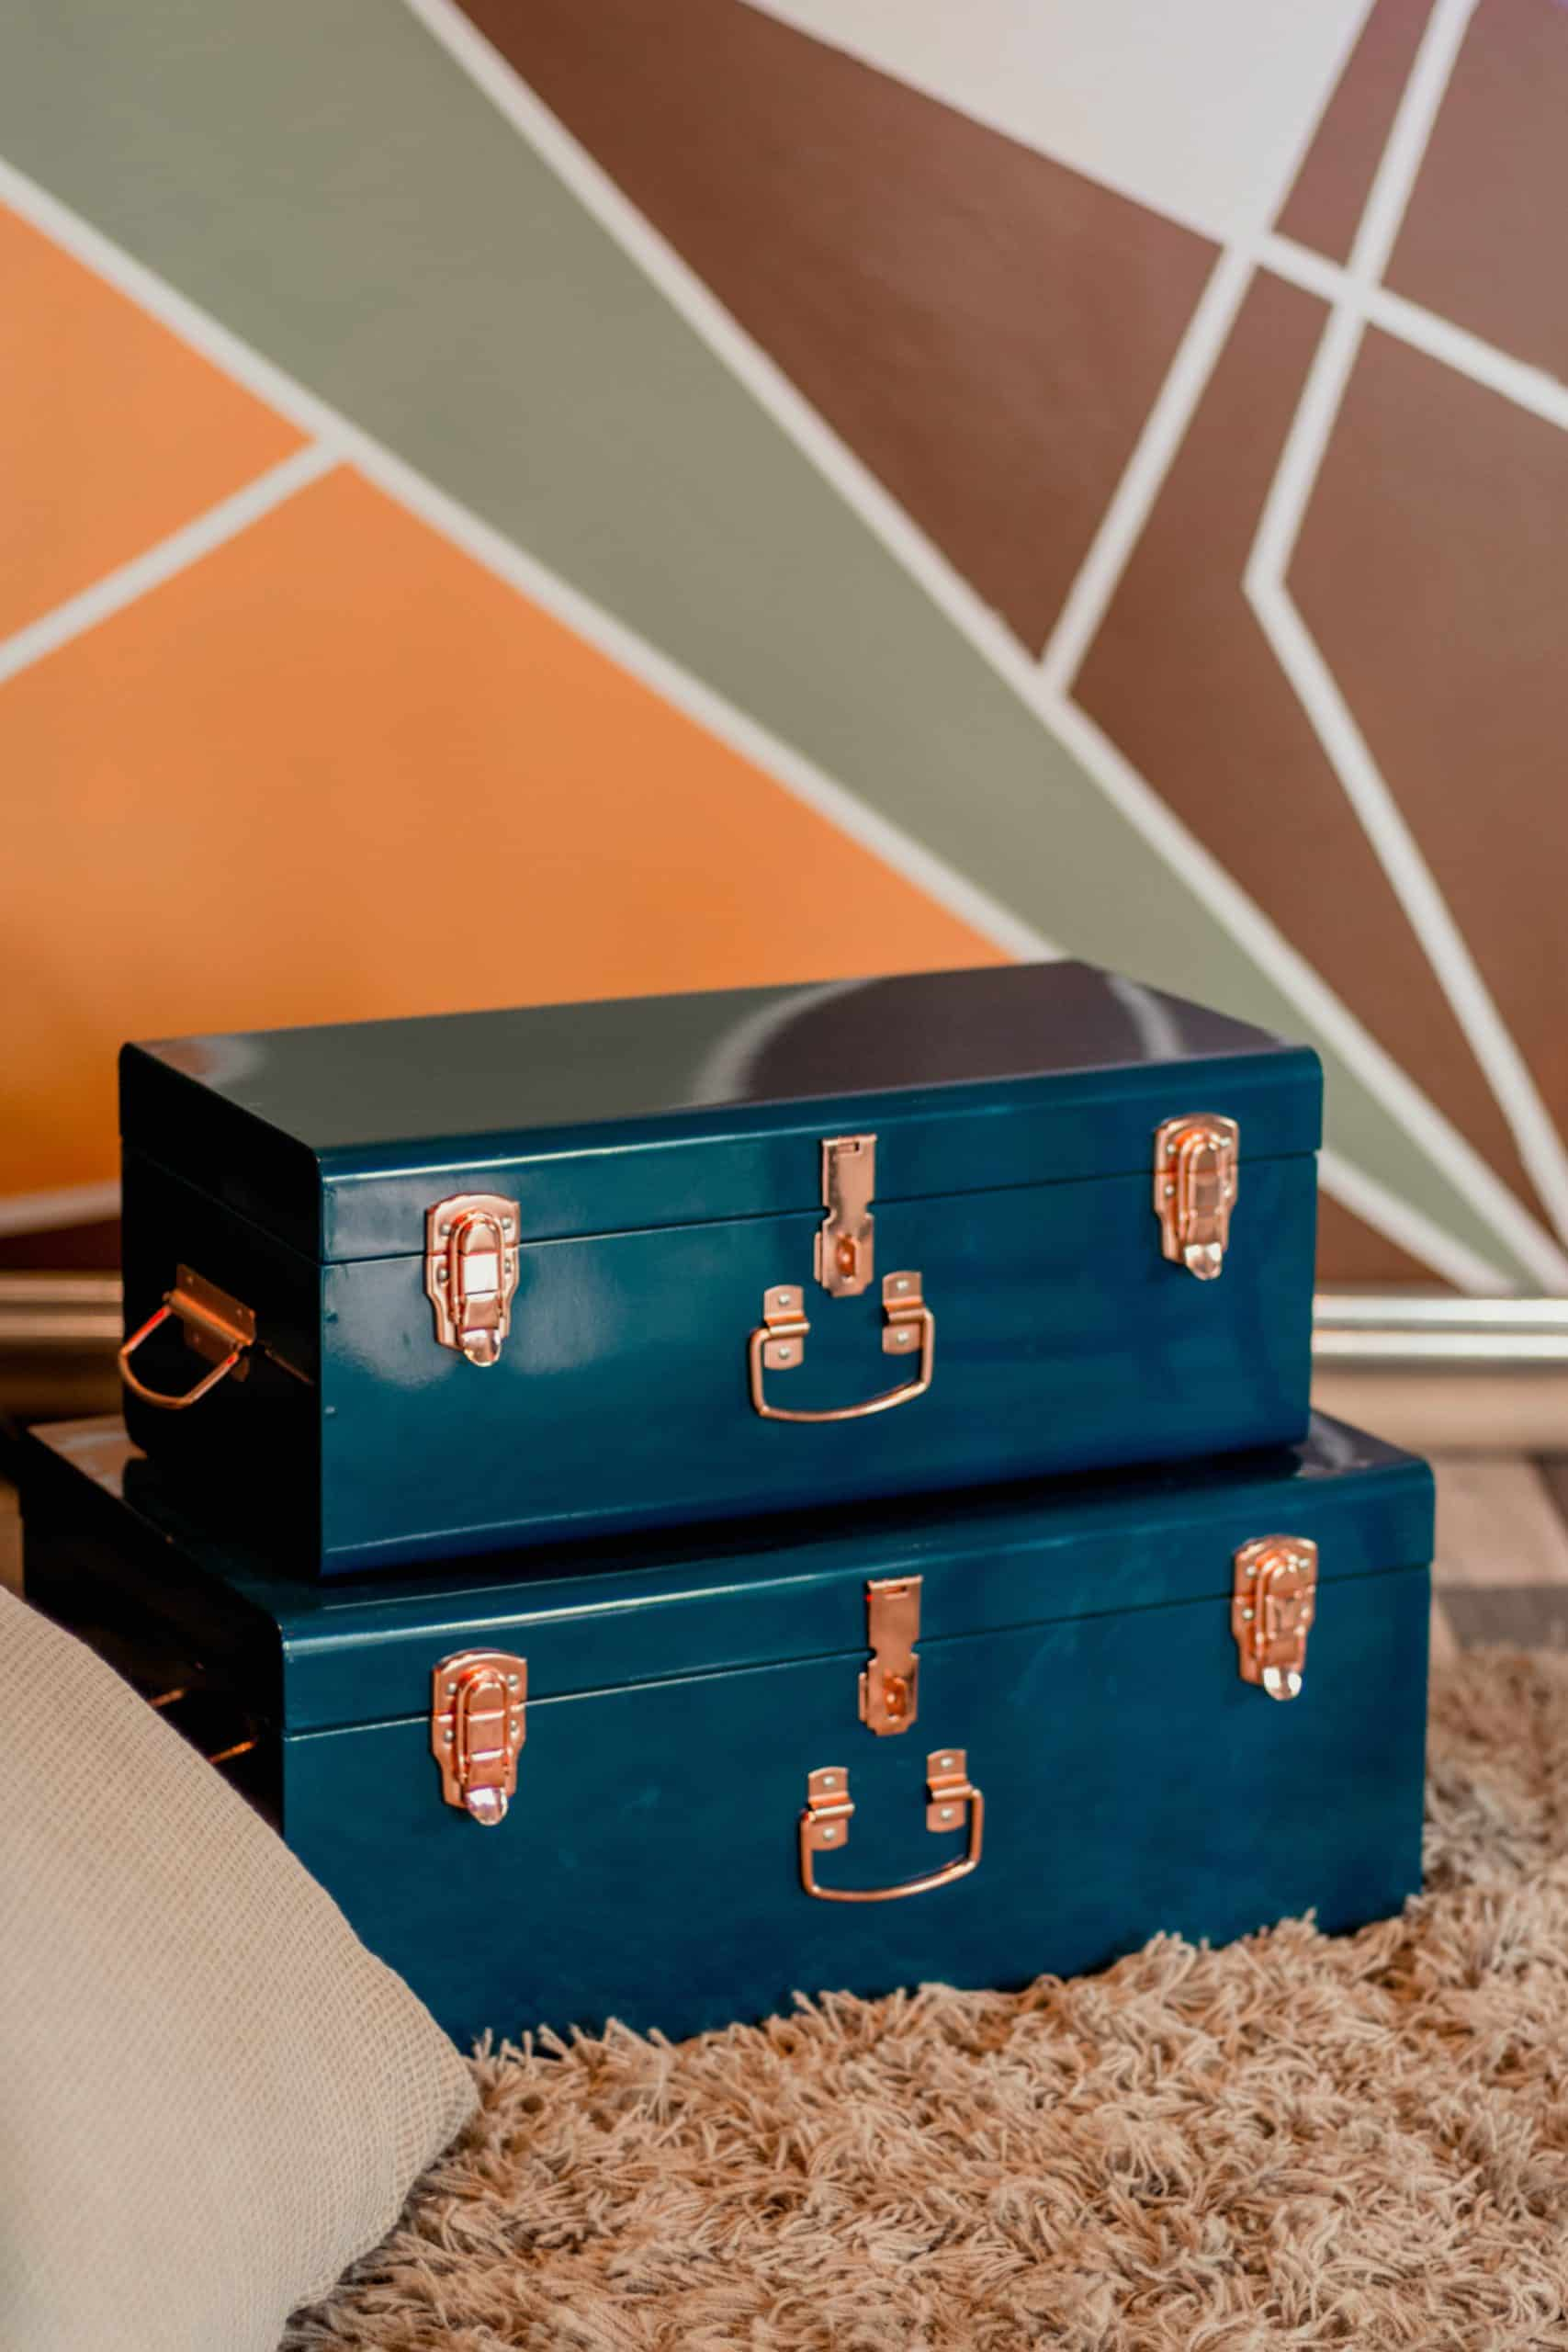 Reliable Home Storage Organizer Tips